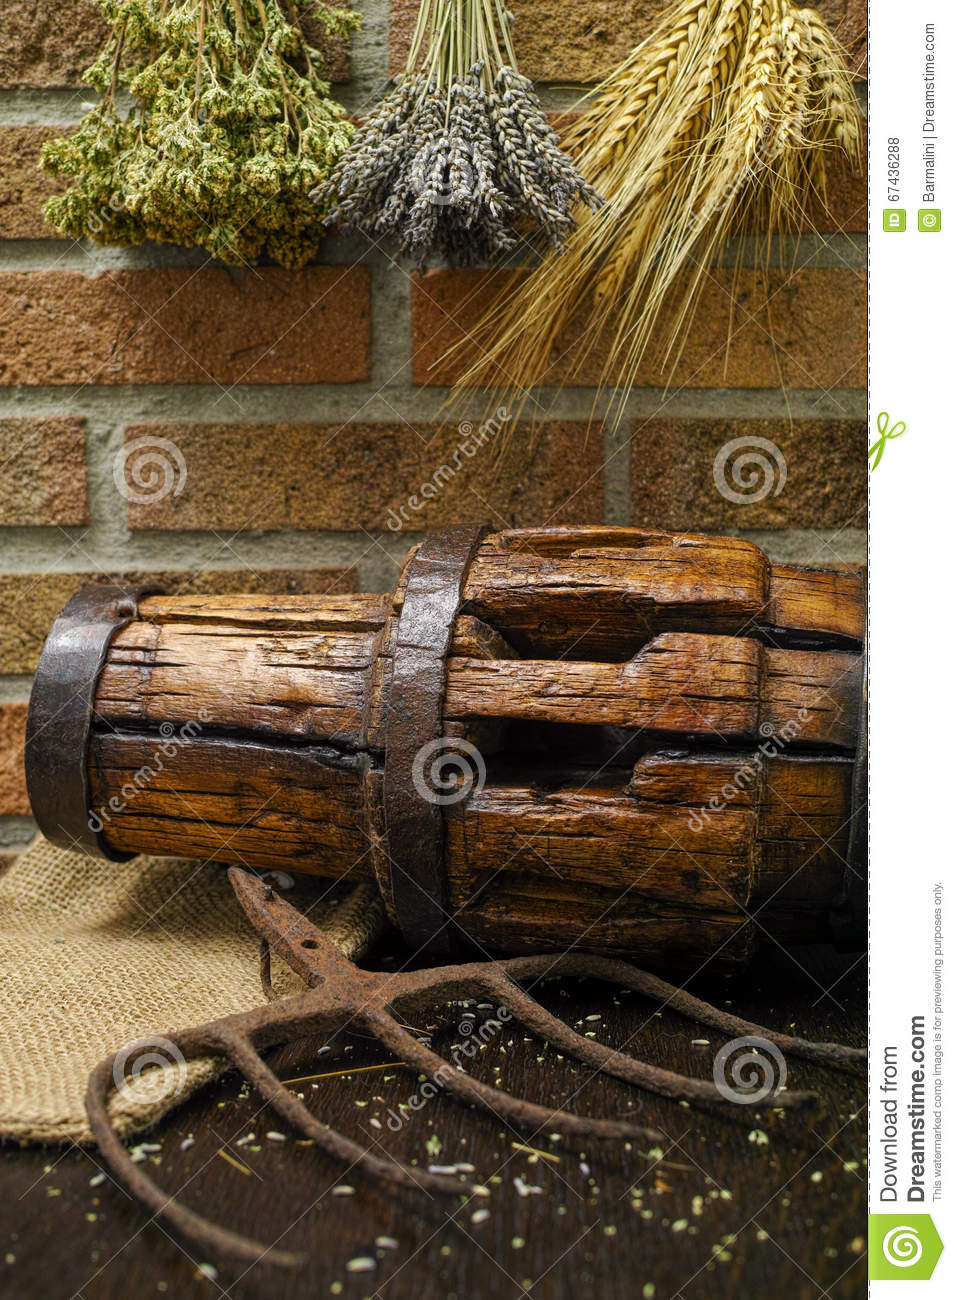 Antique Pitchfork And Wooden Wheel Hub On Burlap Sack Stock Photo